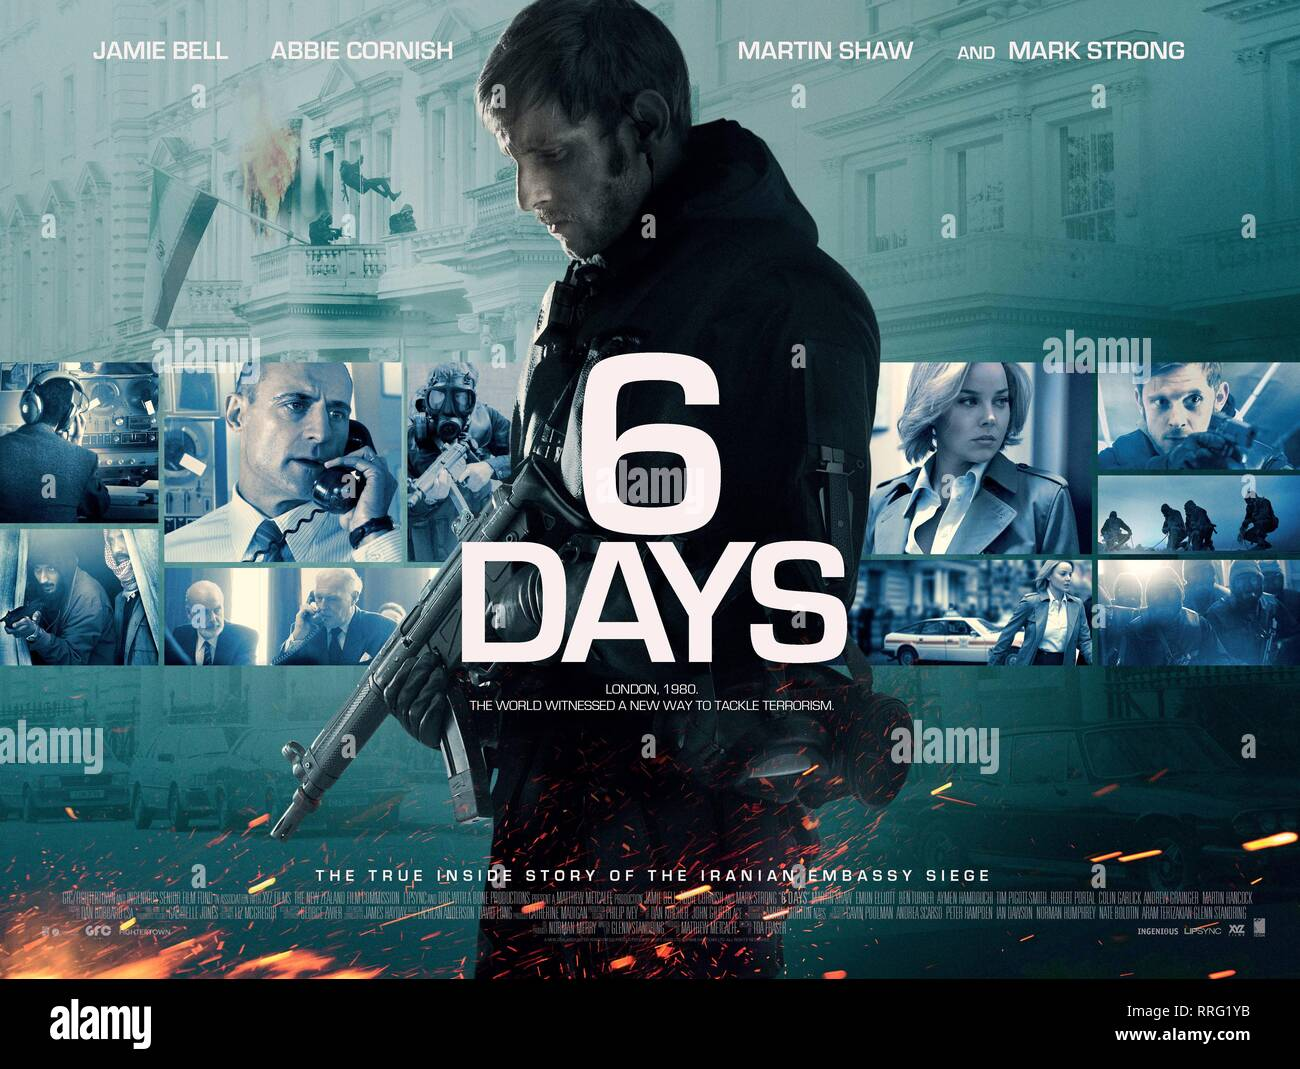 6 DAYS, JAMIE BELL POSTER, 2017 Stock Photo